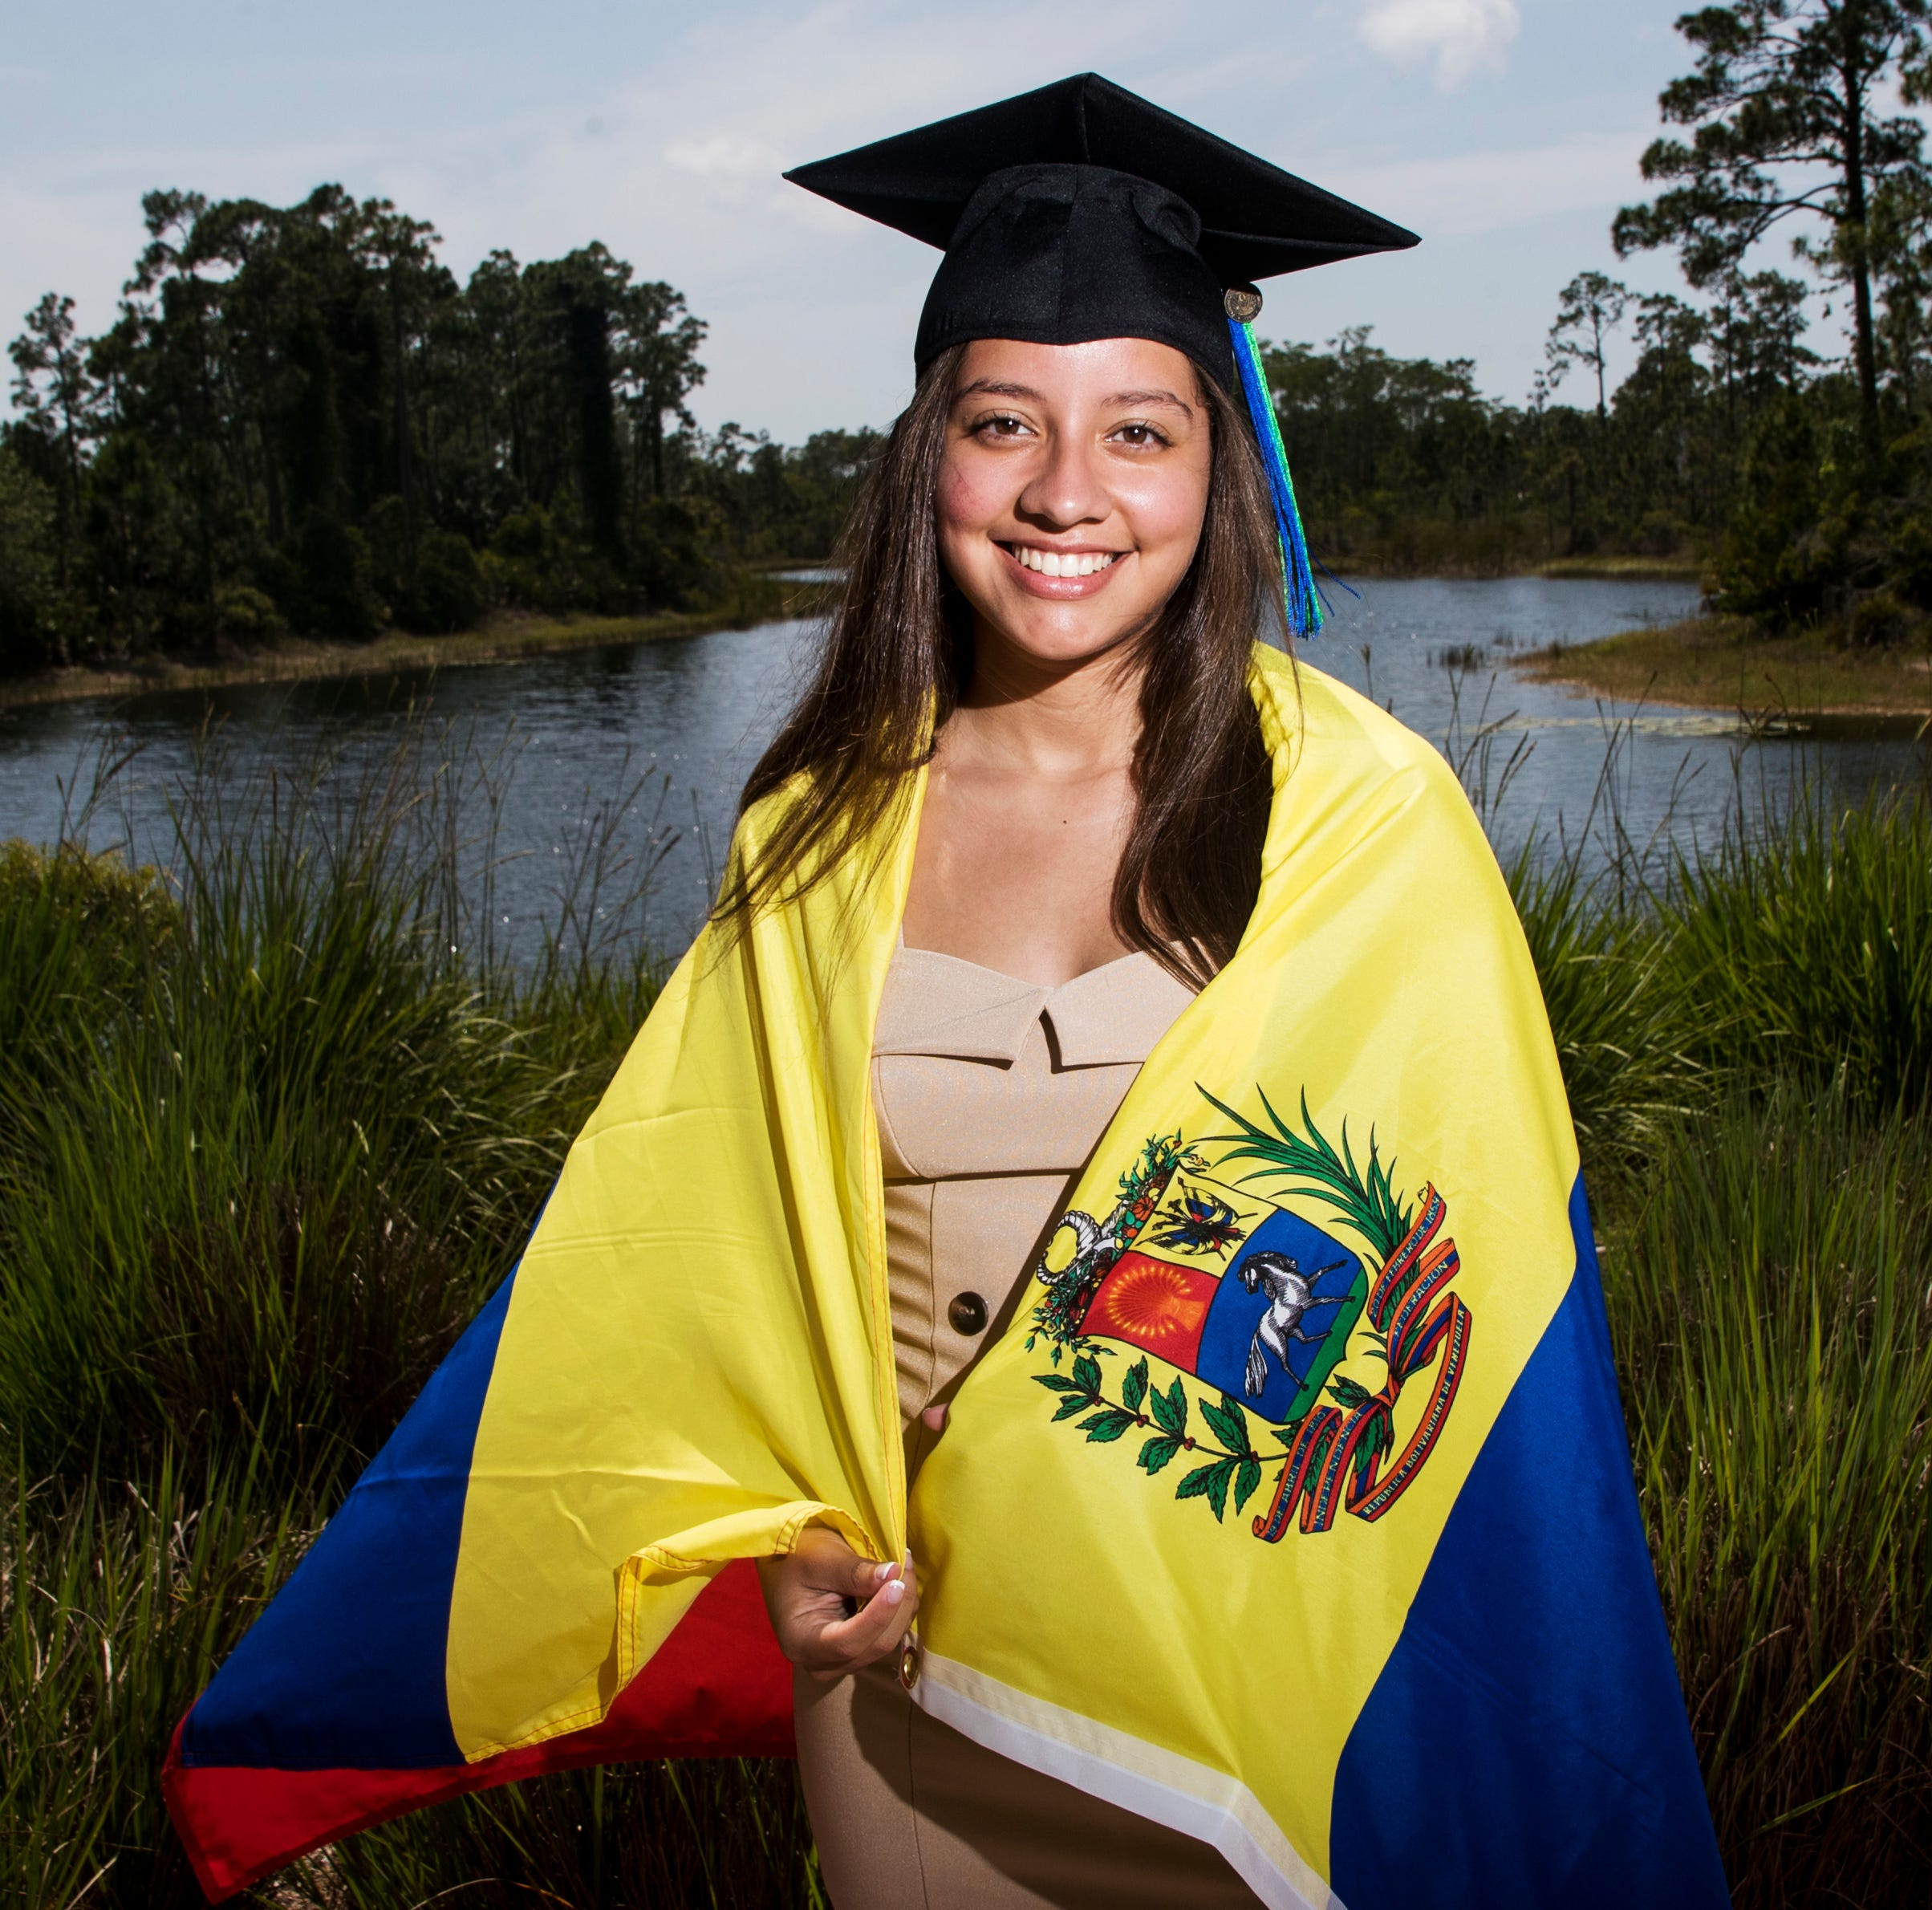 Venezuela native is one of nearly 2,000 Florida Gulf Coast University graduates; biggest commencement ceremony in school's history